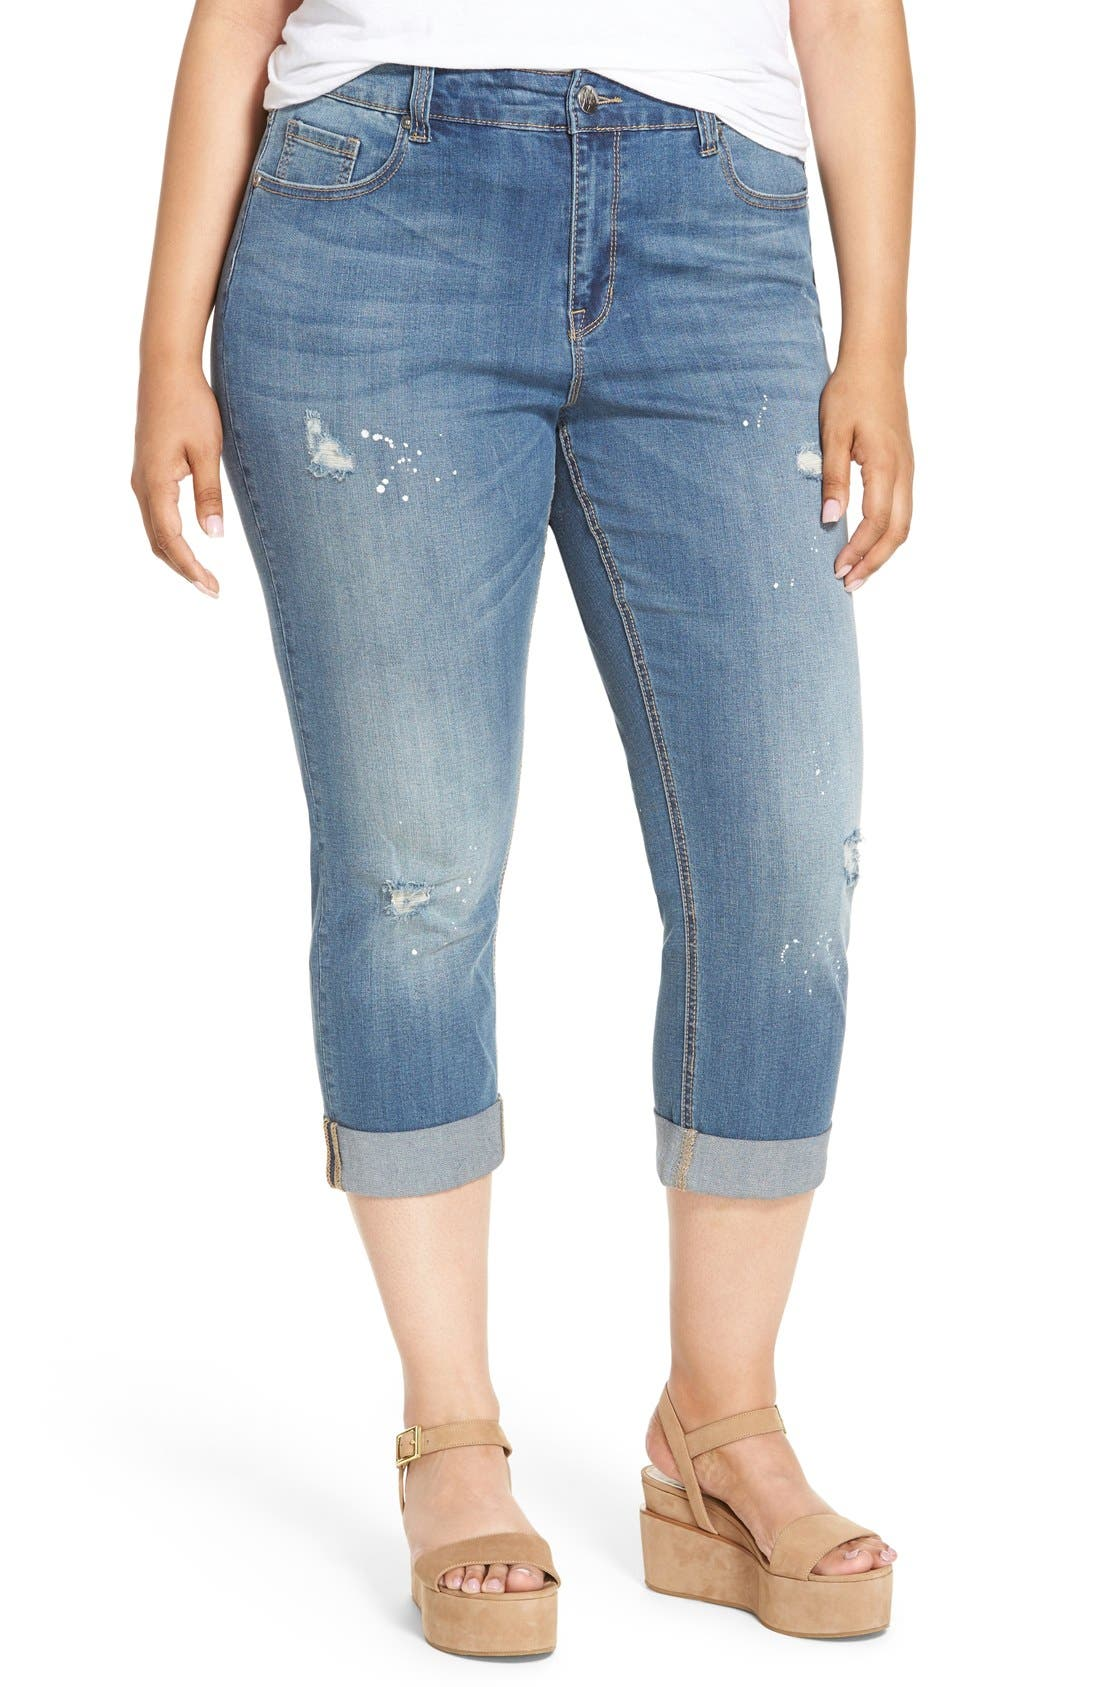 Alternate Image 1 Selected - Melissa McCarthy Seven7 Stretch Crop Girlfriend Jeans (Plus Size)